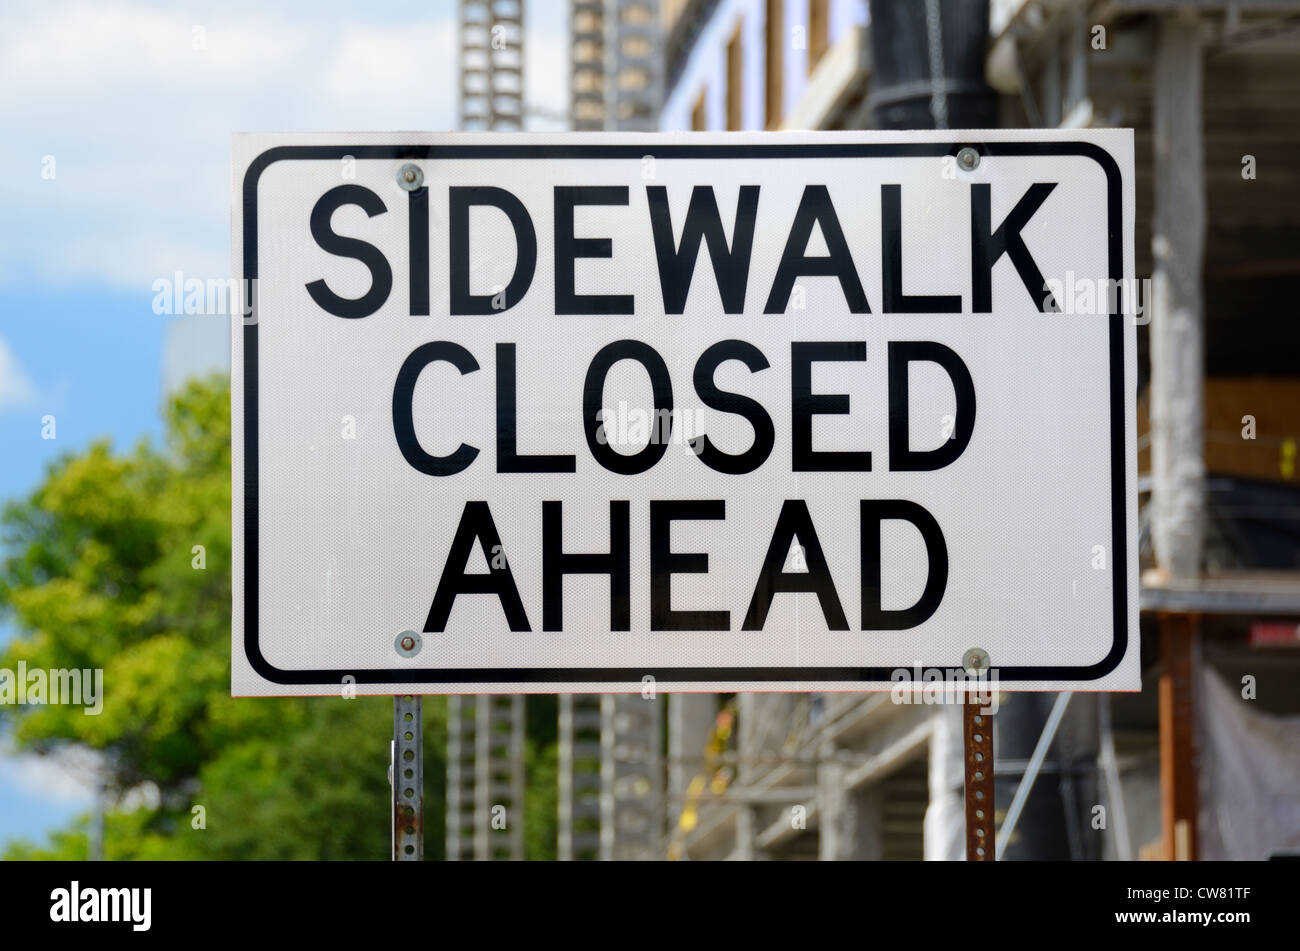 Sidewalk Closed Ahead sign near a construction site - Stock Image